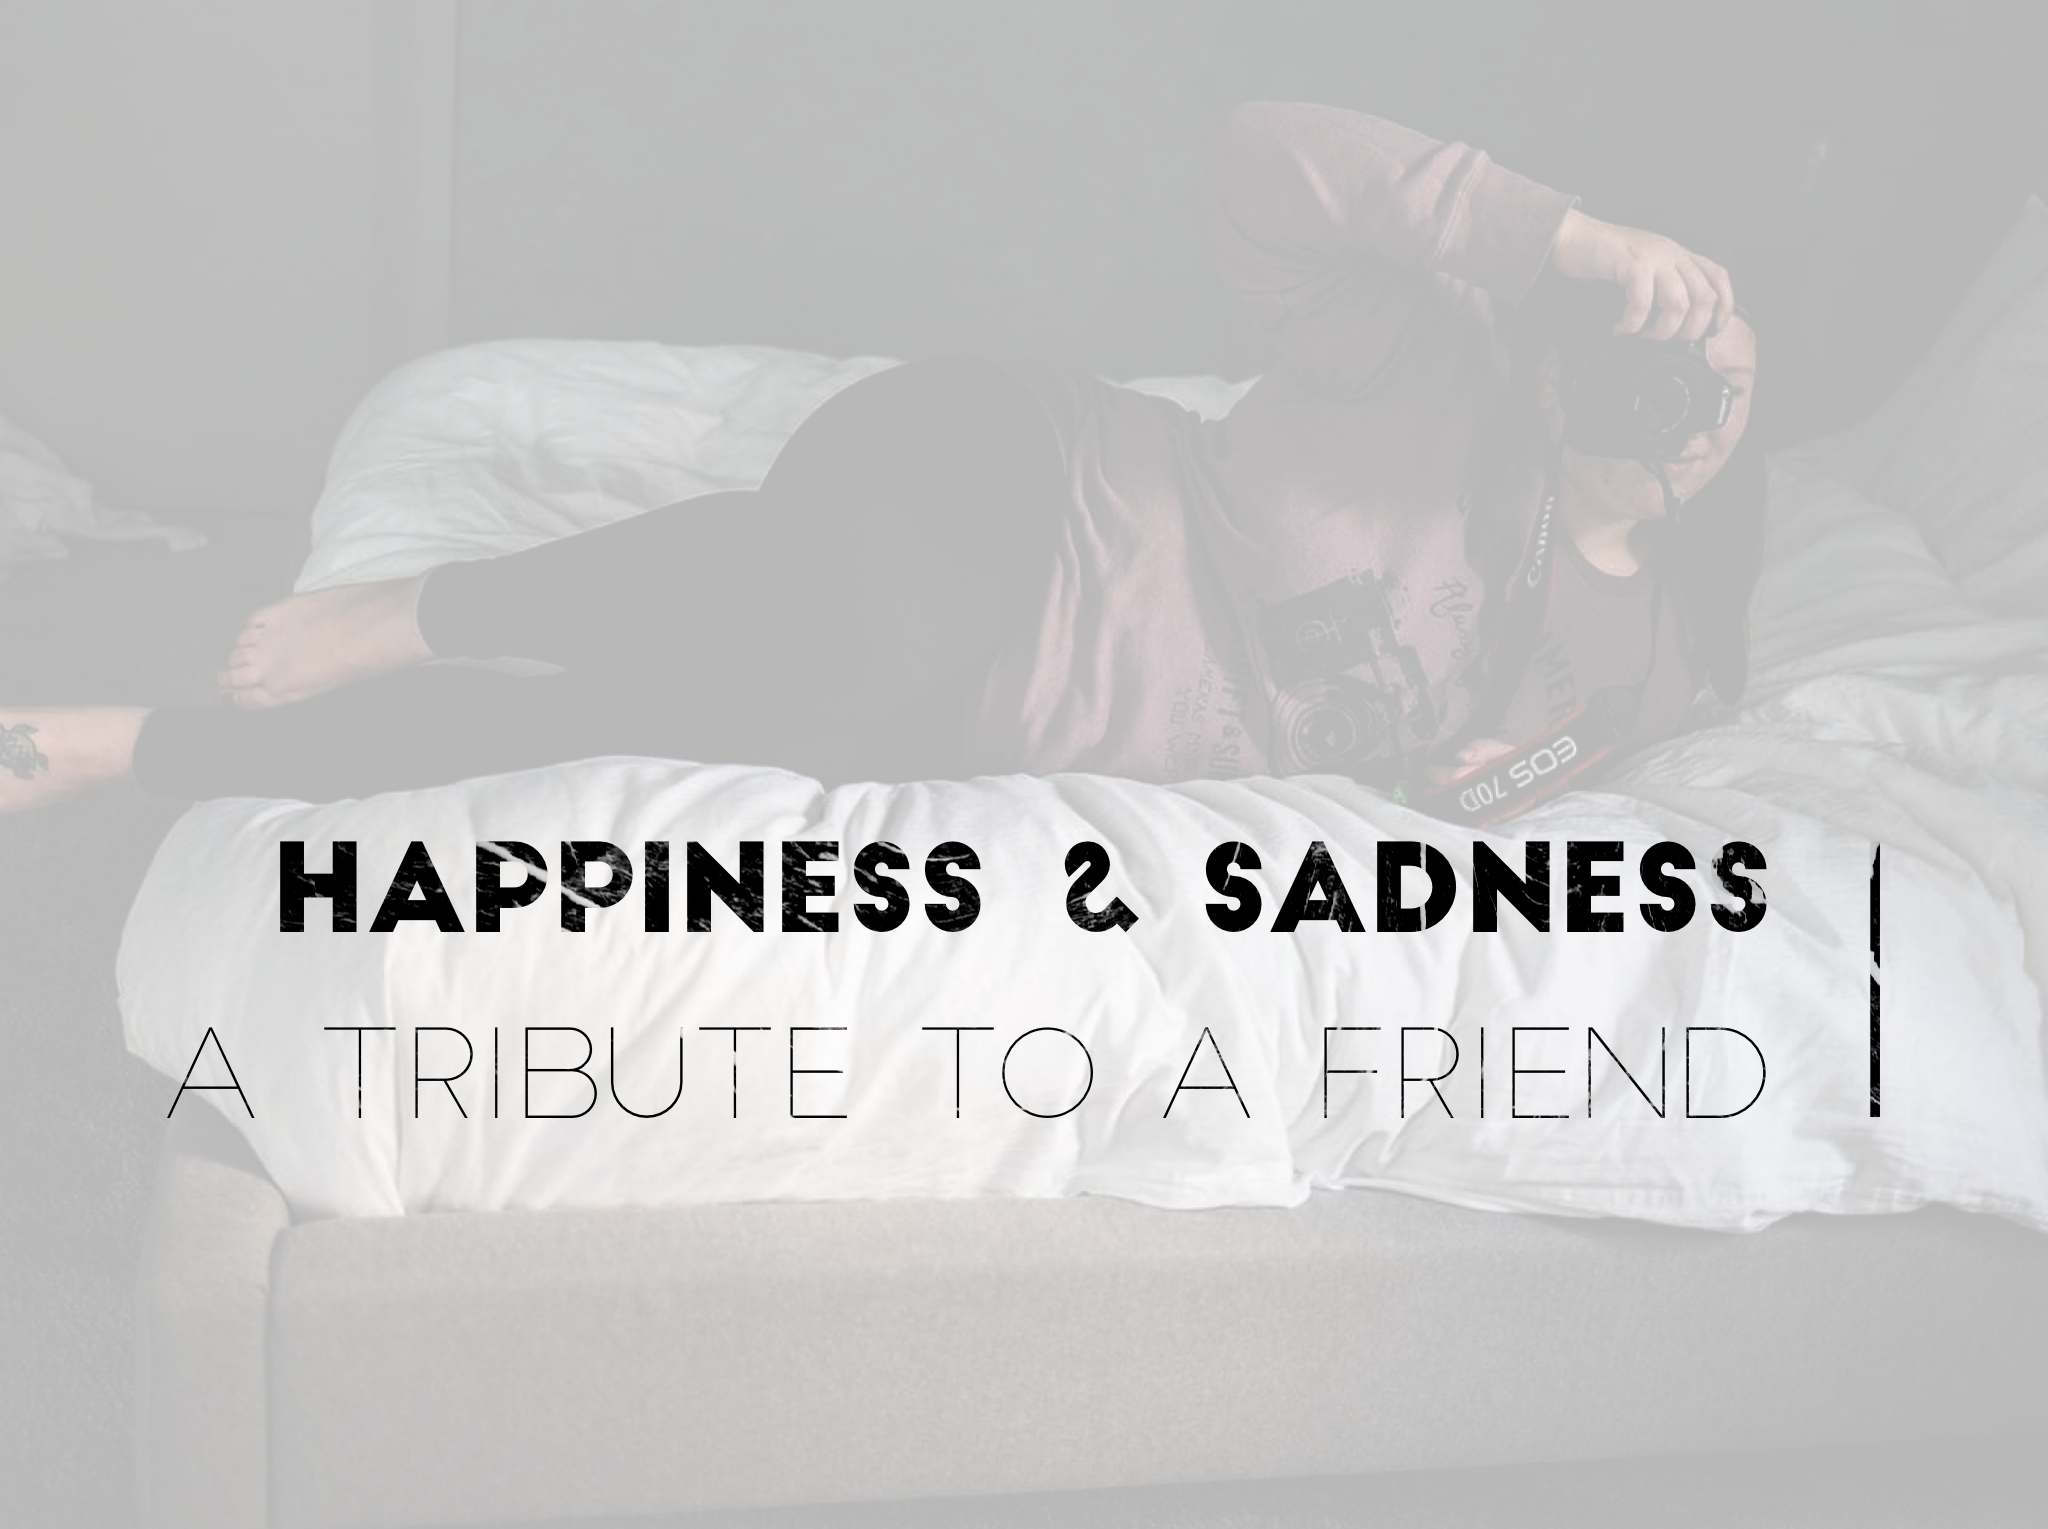 happiness sadness tribute friend boudoir death beautiful